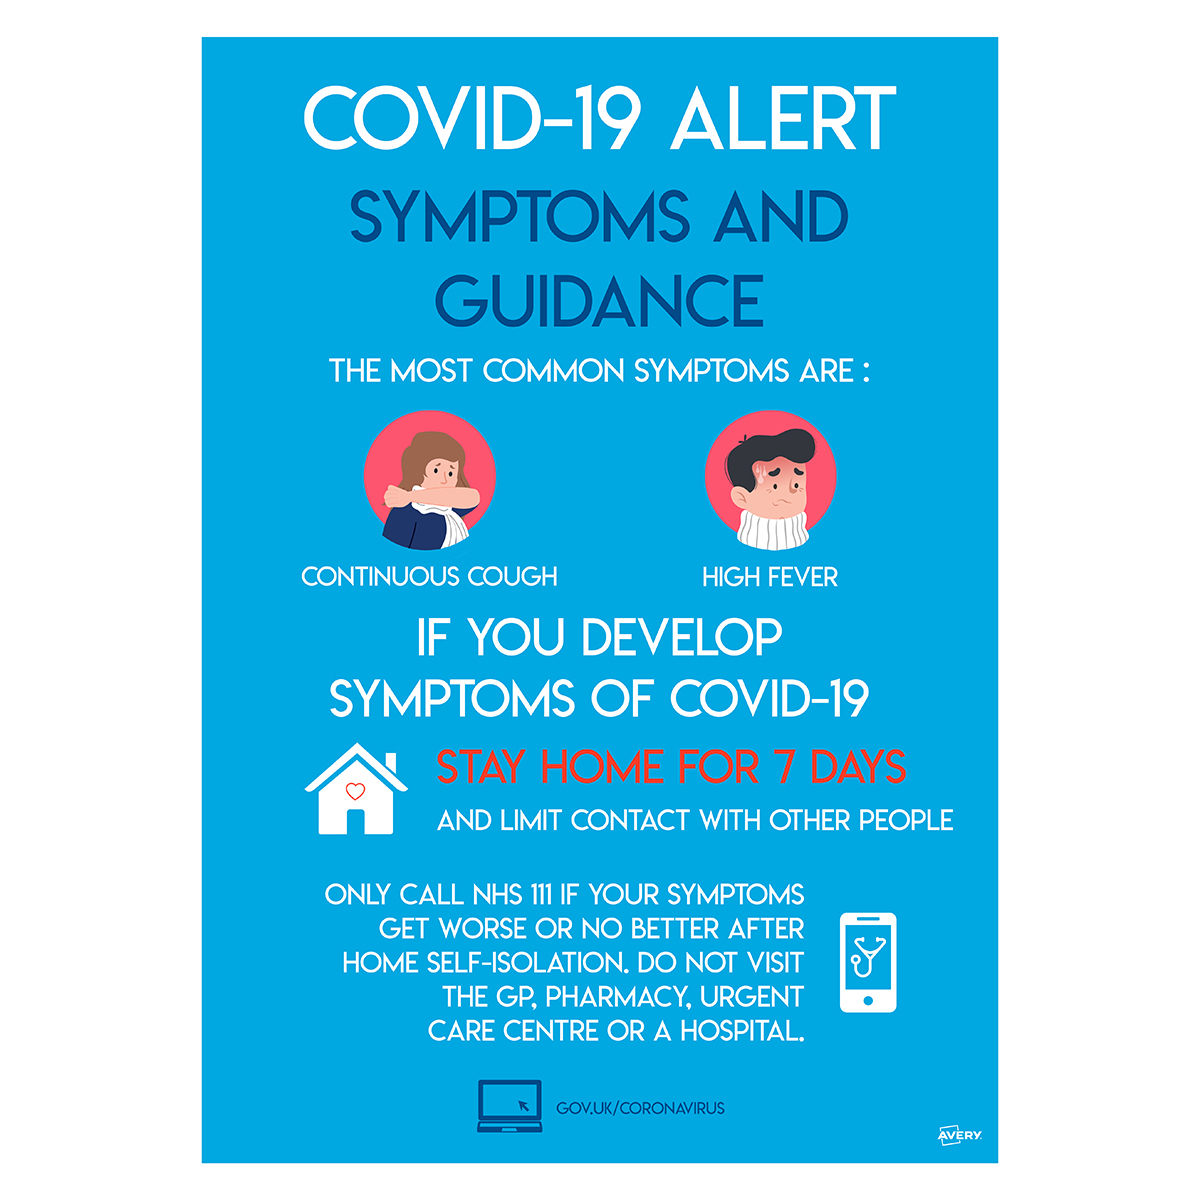 Avery A3 COVID-19 Pre-Printed Symptoms and Guidance Poster